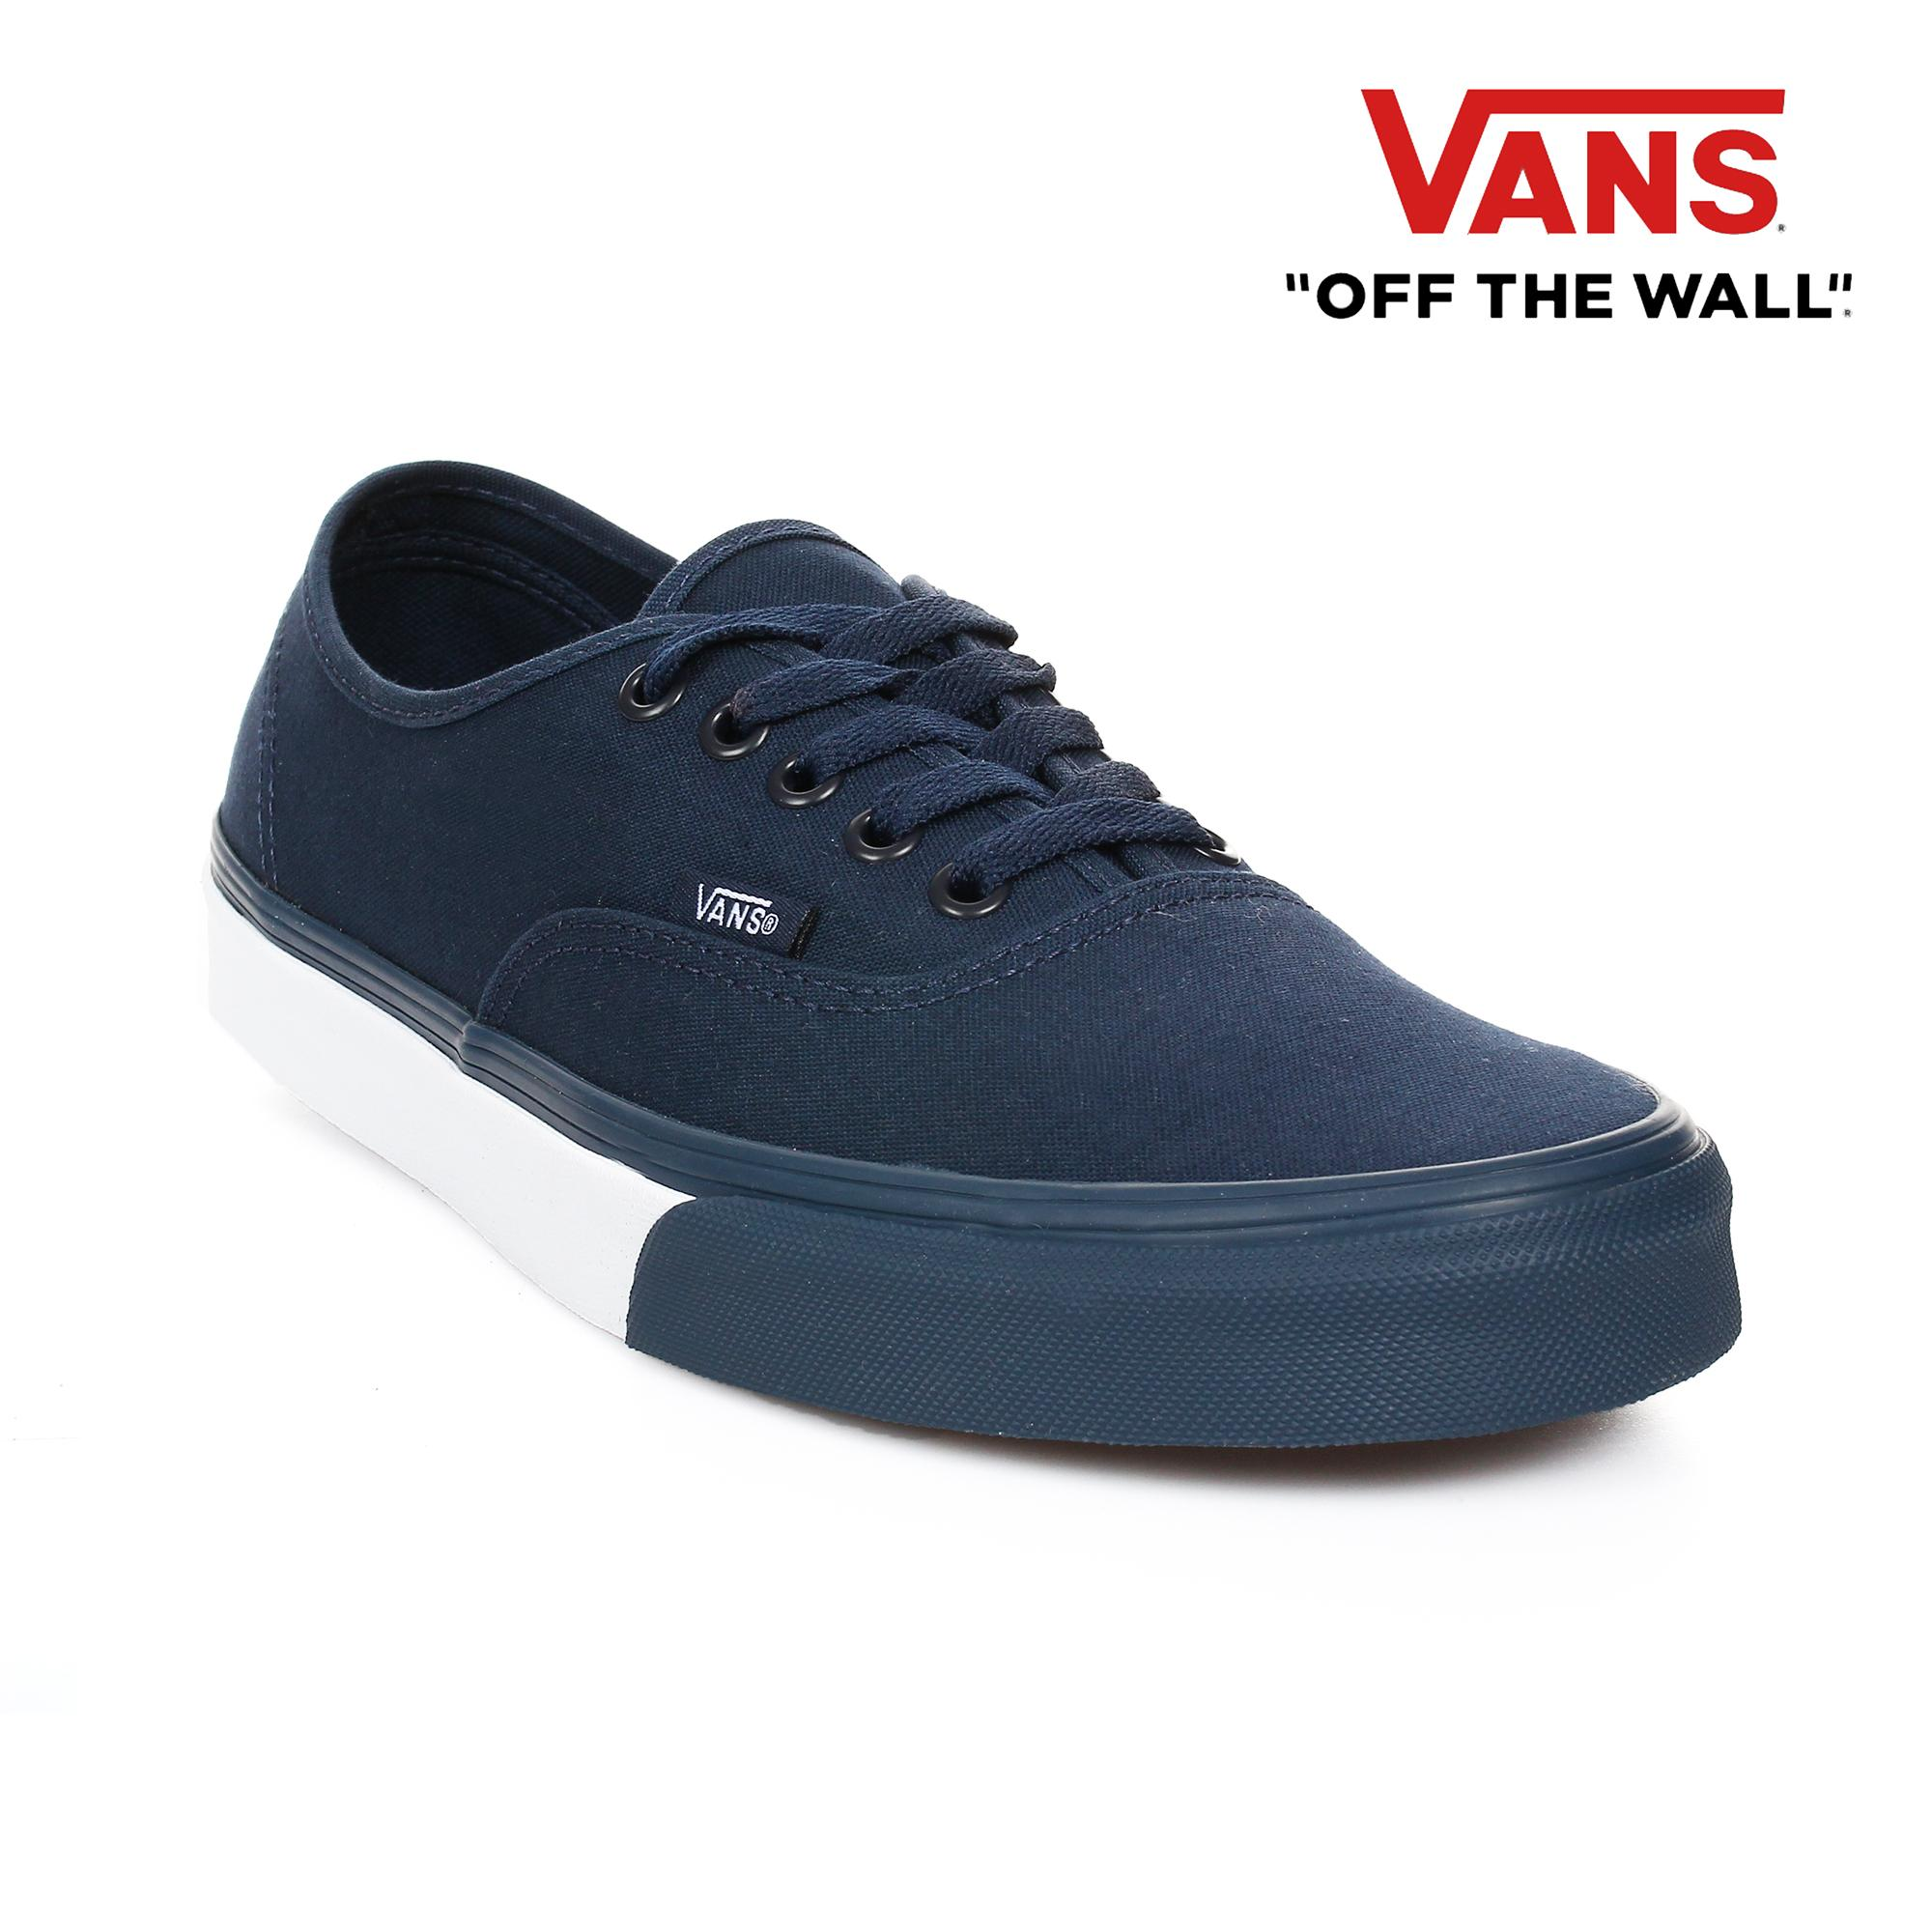 Vans Shoes for Men Philippines - Vans Men s Shoes for sale - prices ... cd1e1f4bc7